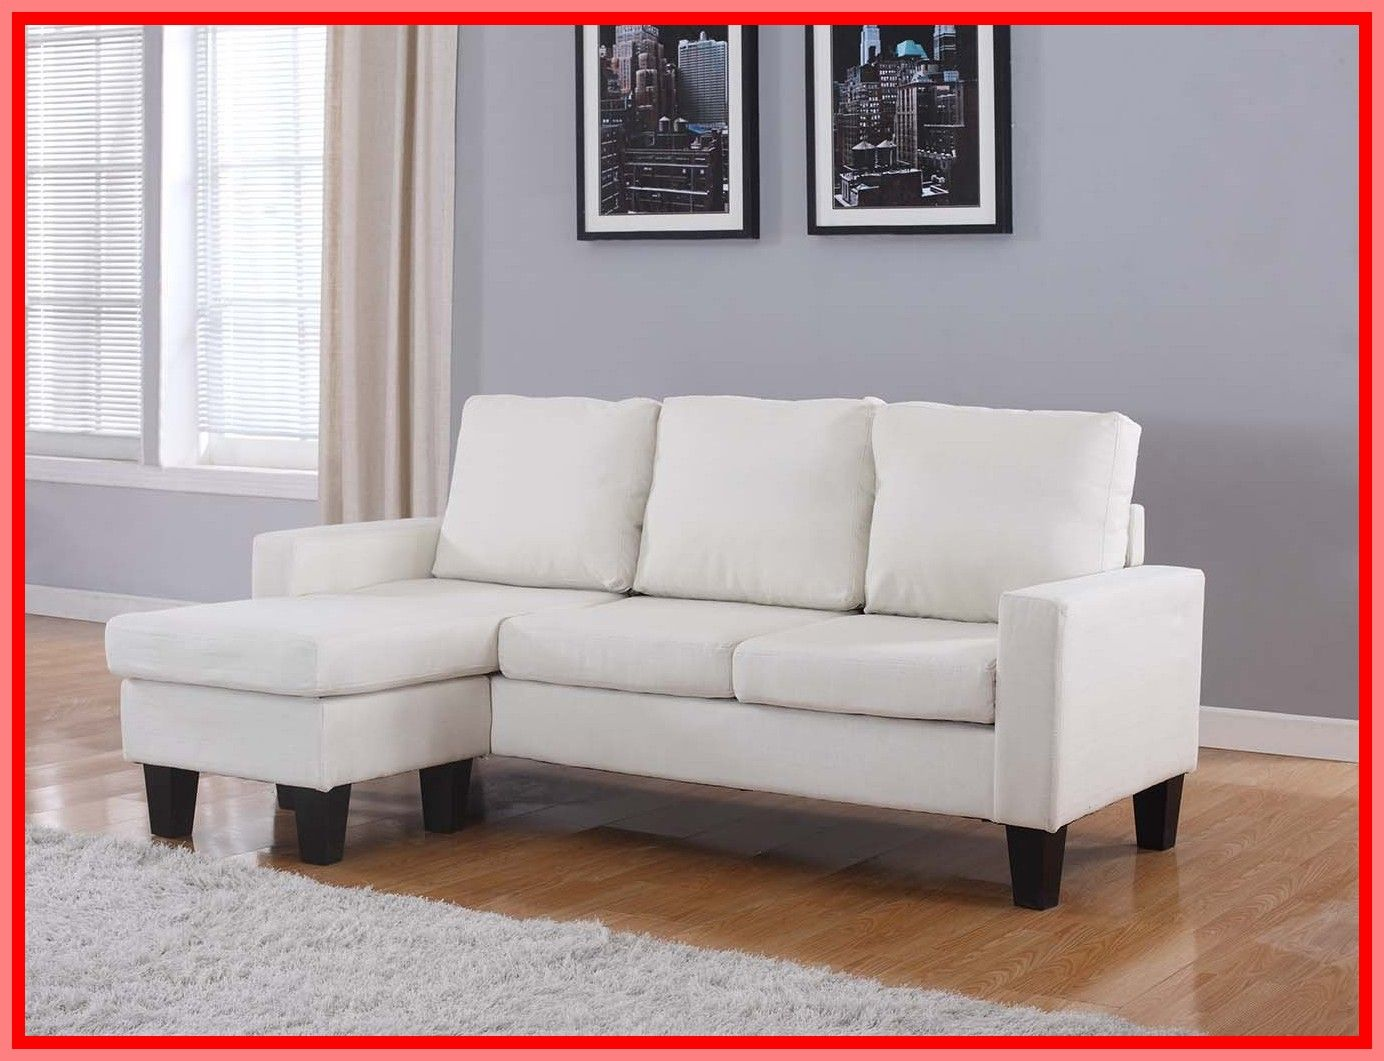 107 Reference Of Sectional Sofa Cheap For Sale In 2020 Cheap Sofas Sectional Sofas Cheap Sectional Sofa